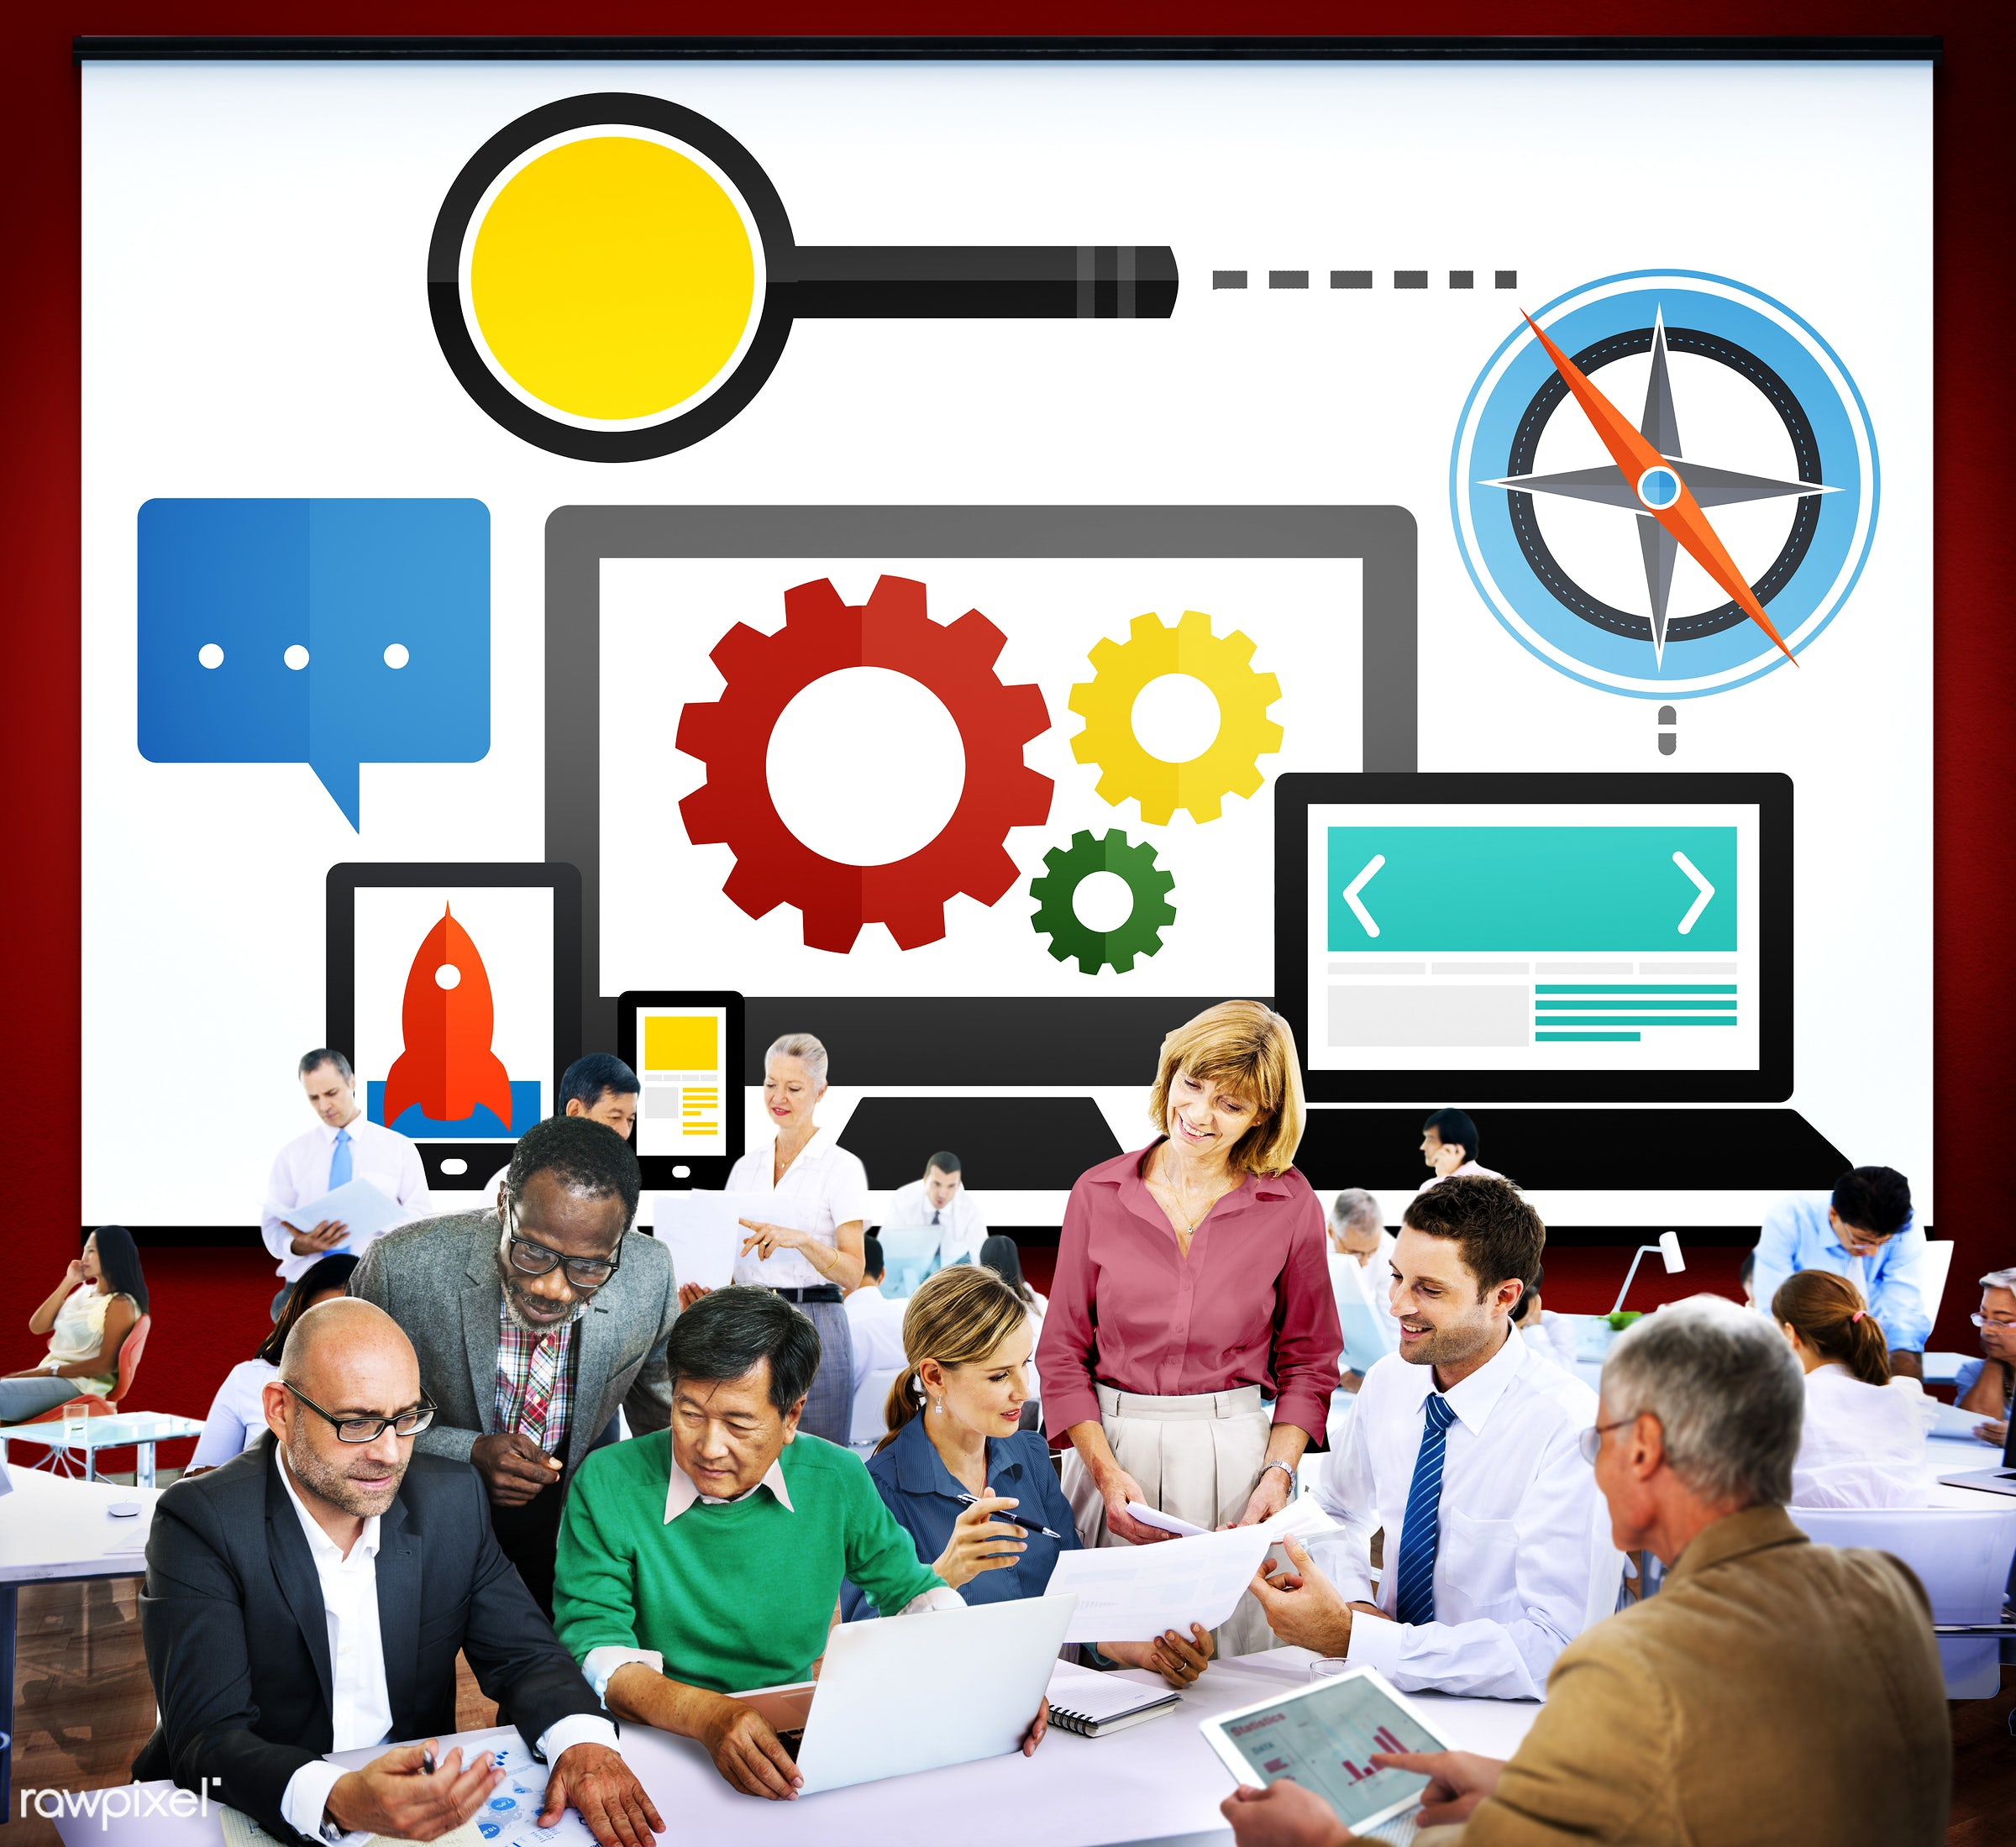 analysis, business, business people, businessmen, businesswomen, busy, cog, communication, compass, computer, content,...